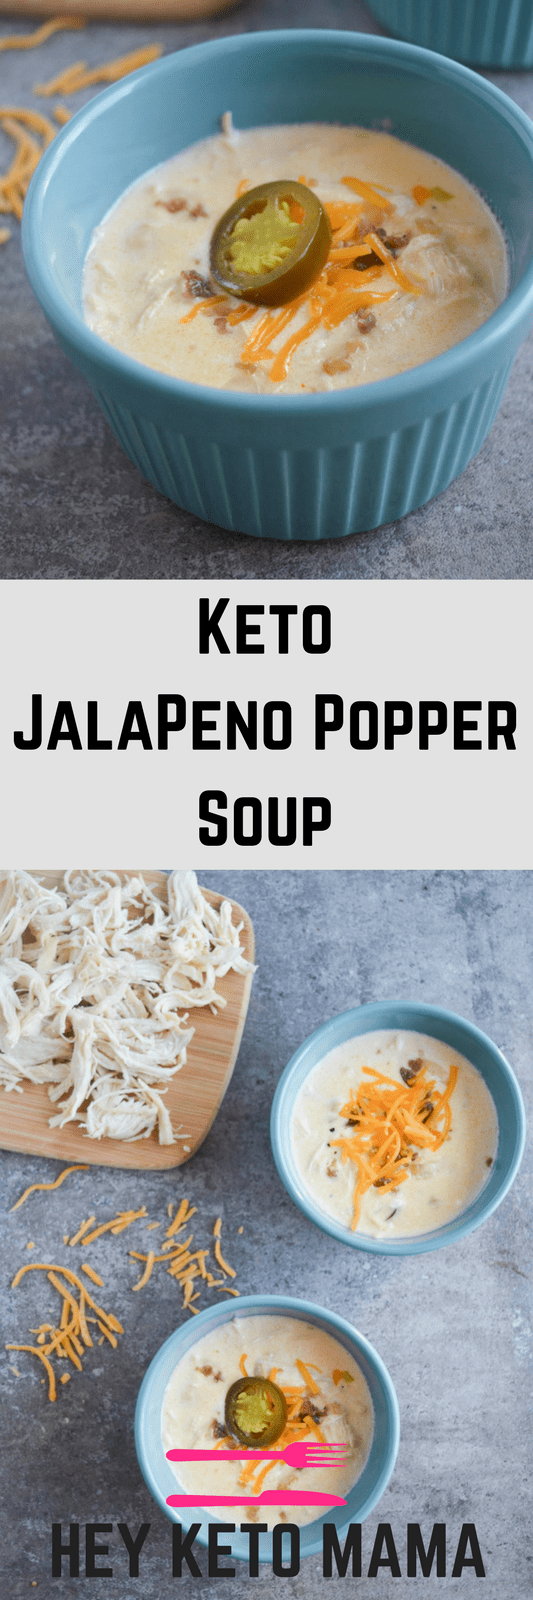 This Keto Jalapeno Popper Soup will soon become your family's favorite low carb comfort food. It's packed with savory flavor and just the right amount of kick. Be sure to make at least a double batch for leftovers!